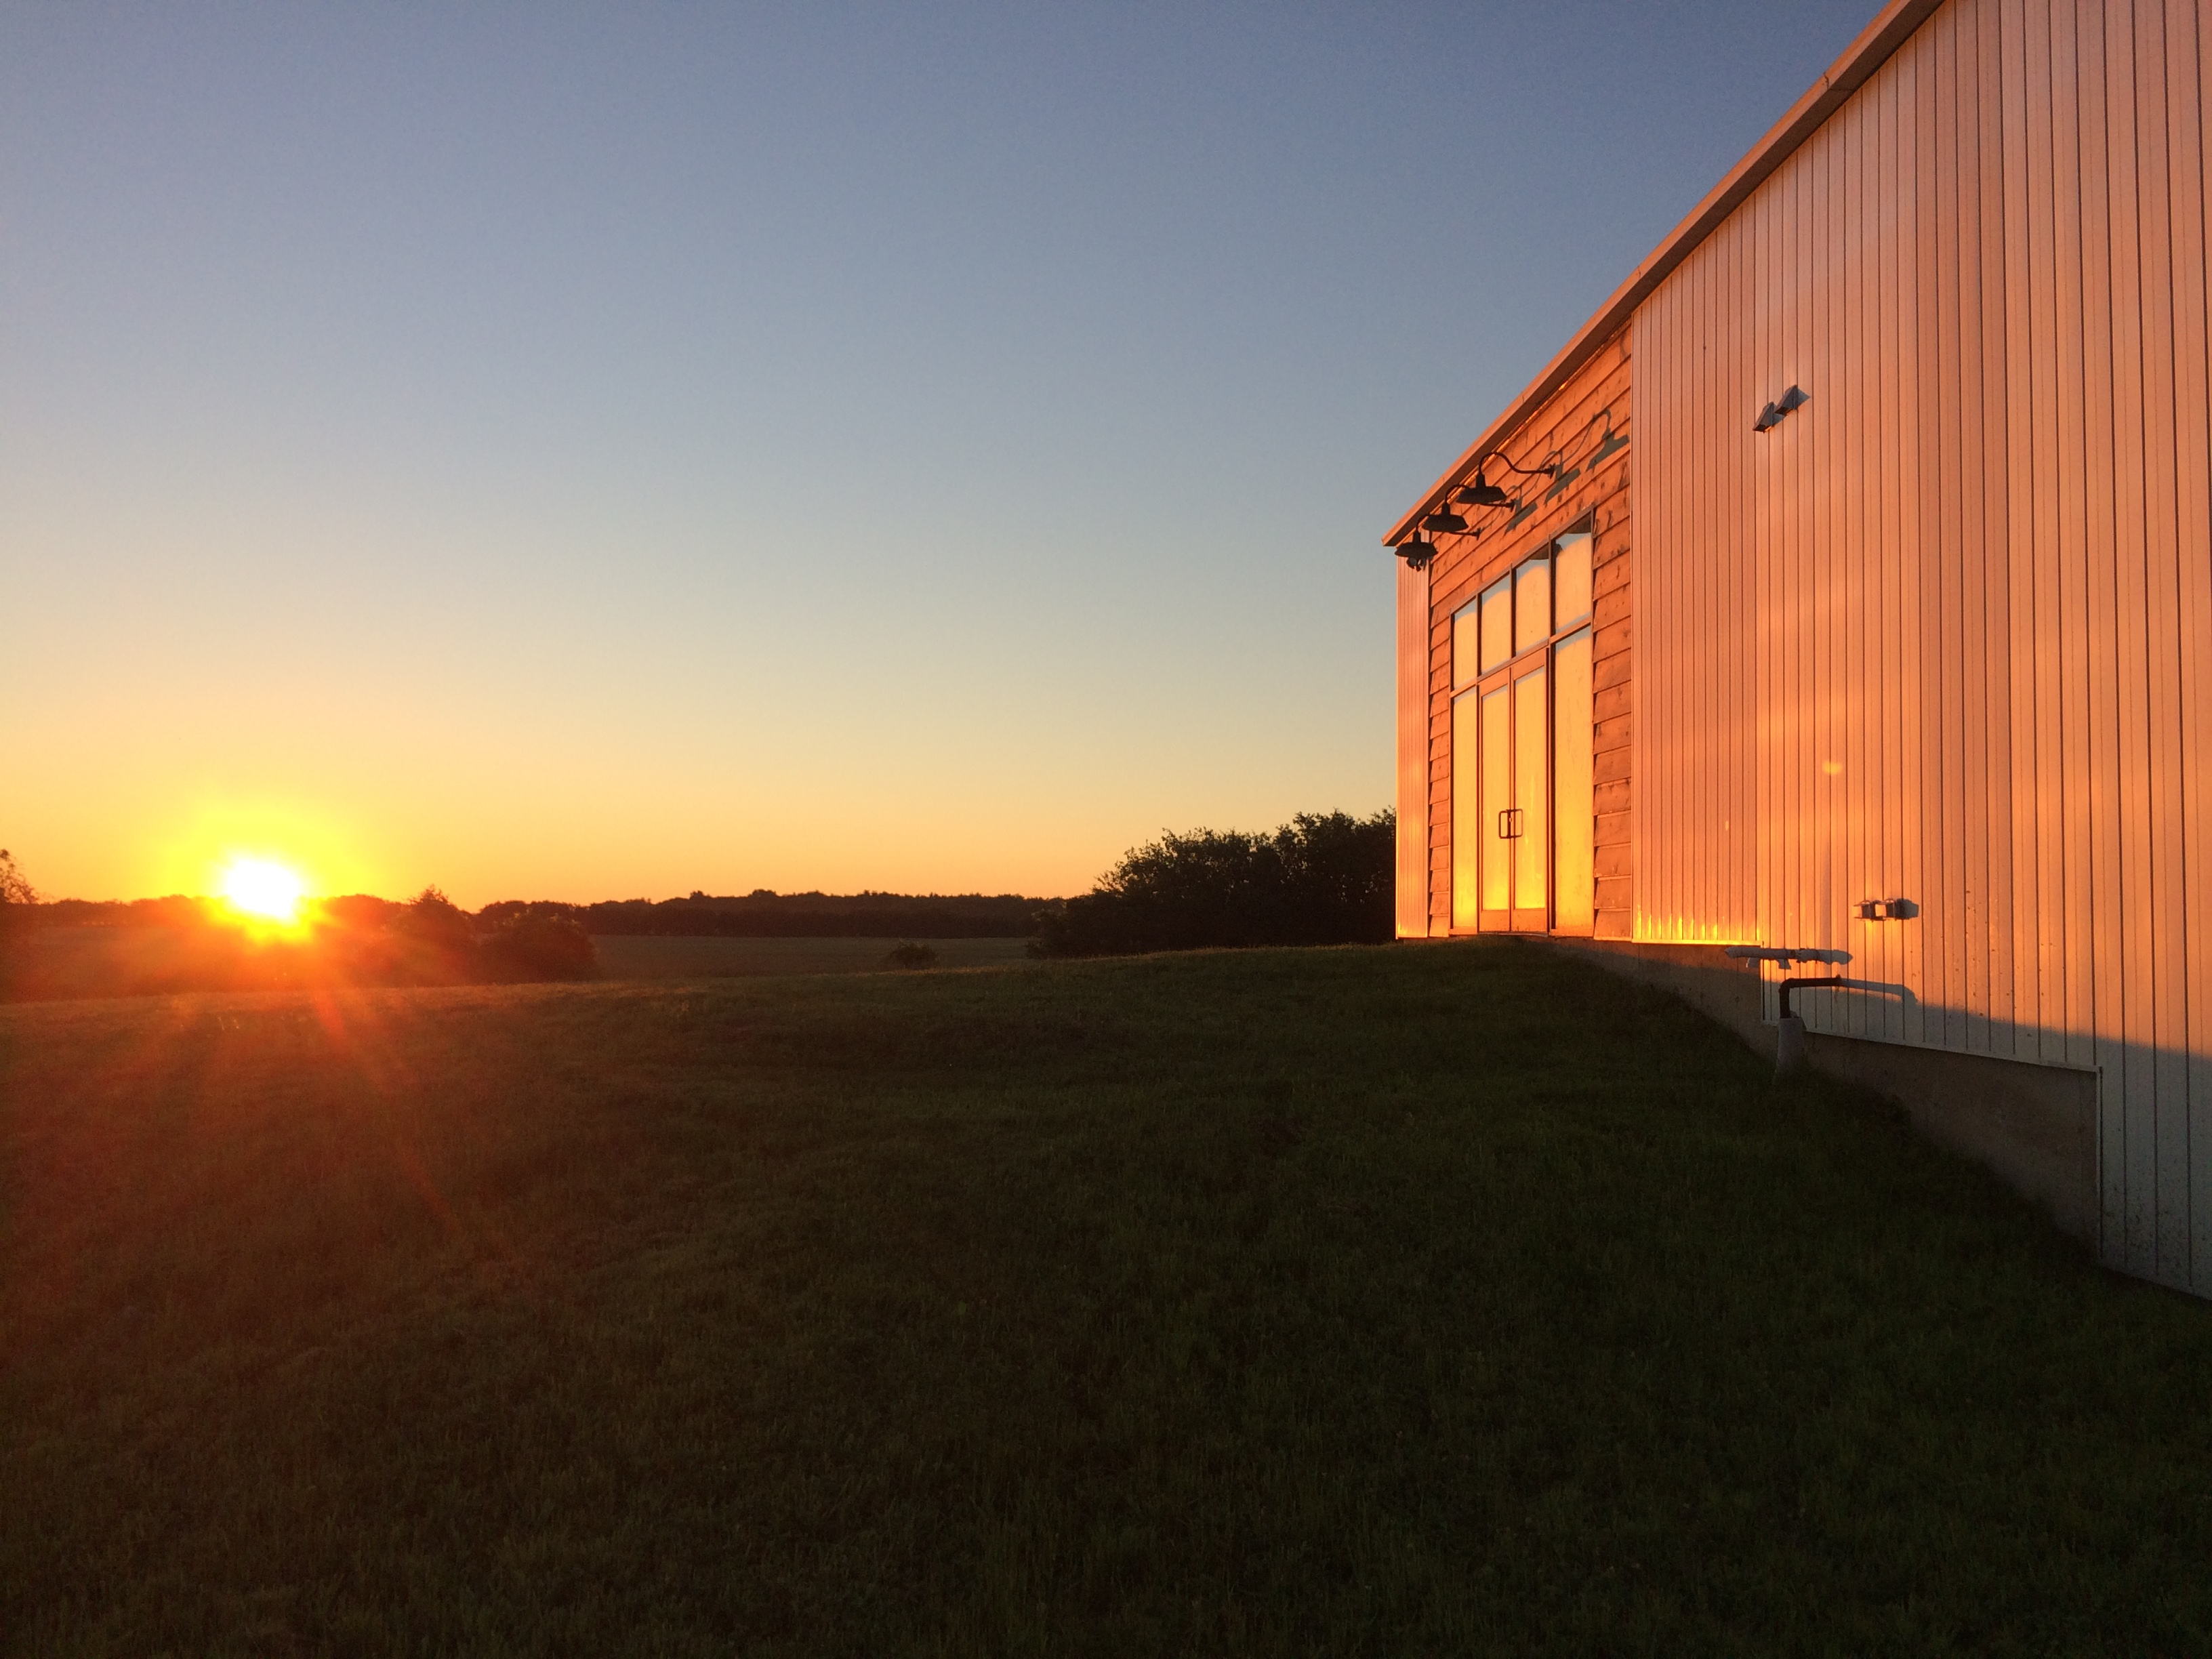 Prince Edward County cidery with sunset